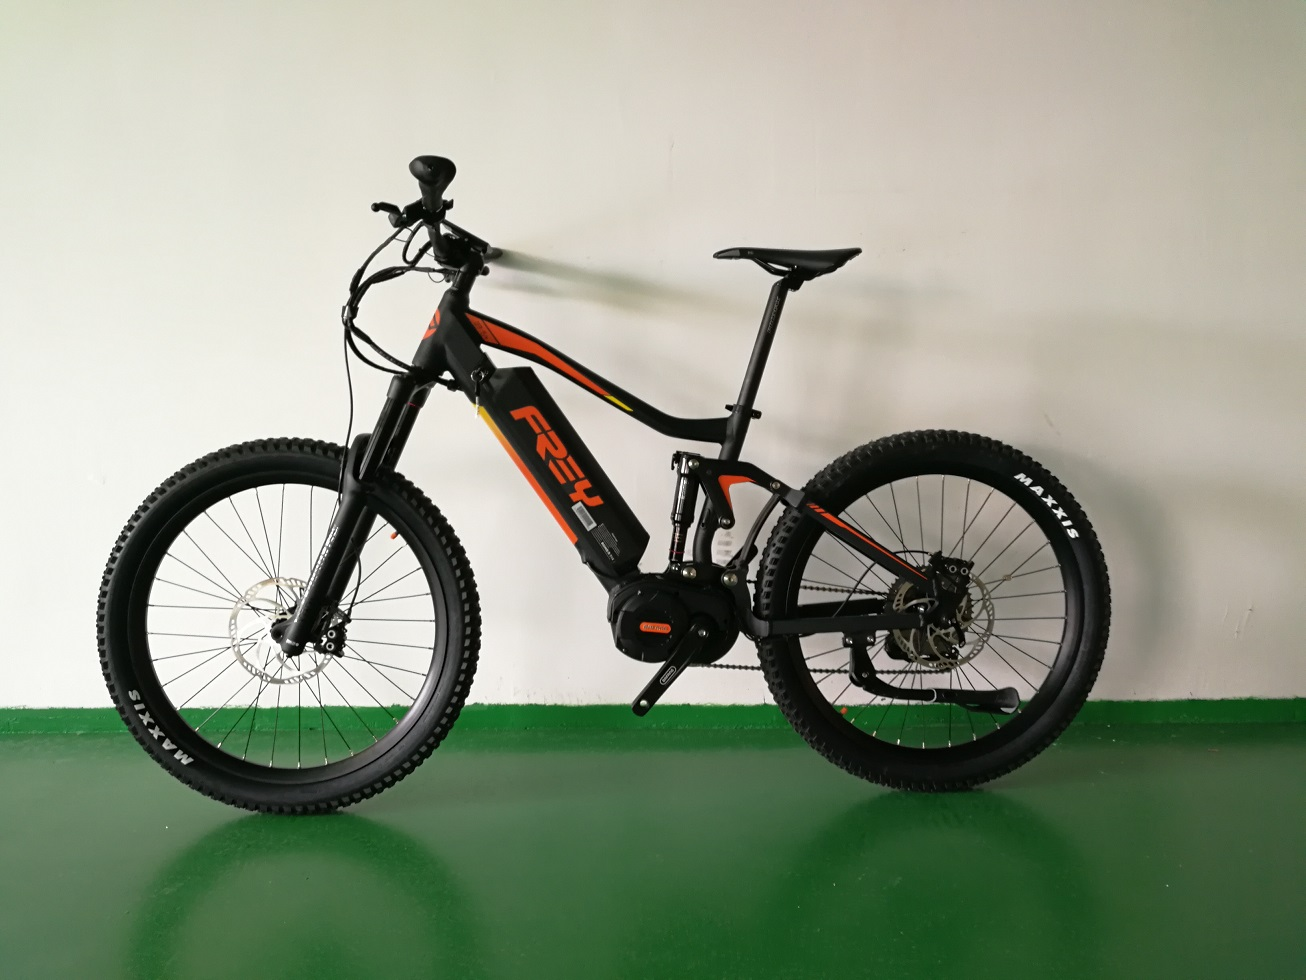 FREY AM1000 Bafang Mid Drive 1000W electric mountain bike full suspension eMTB mountain ebike Enduro ebike